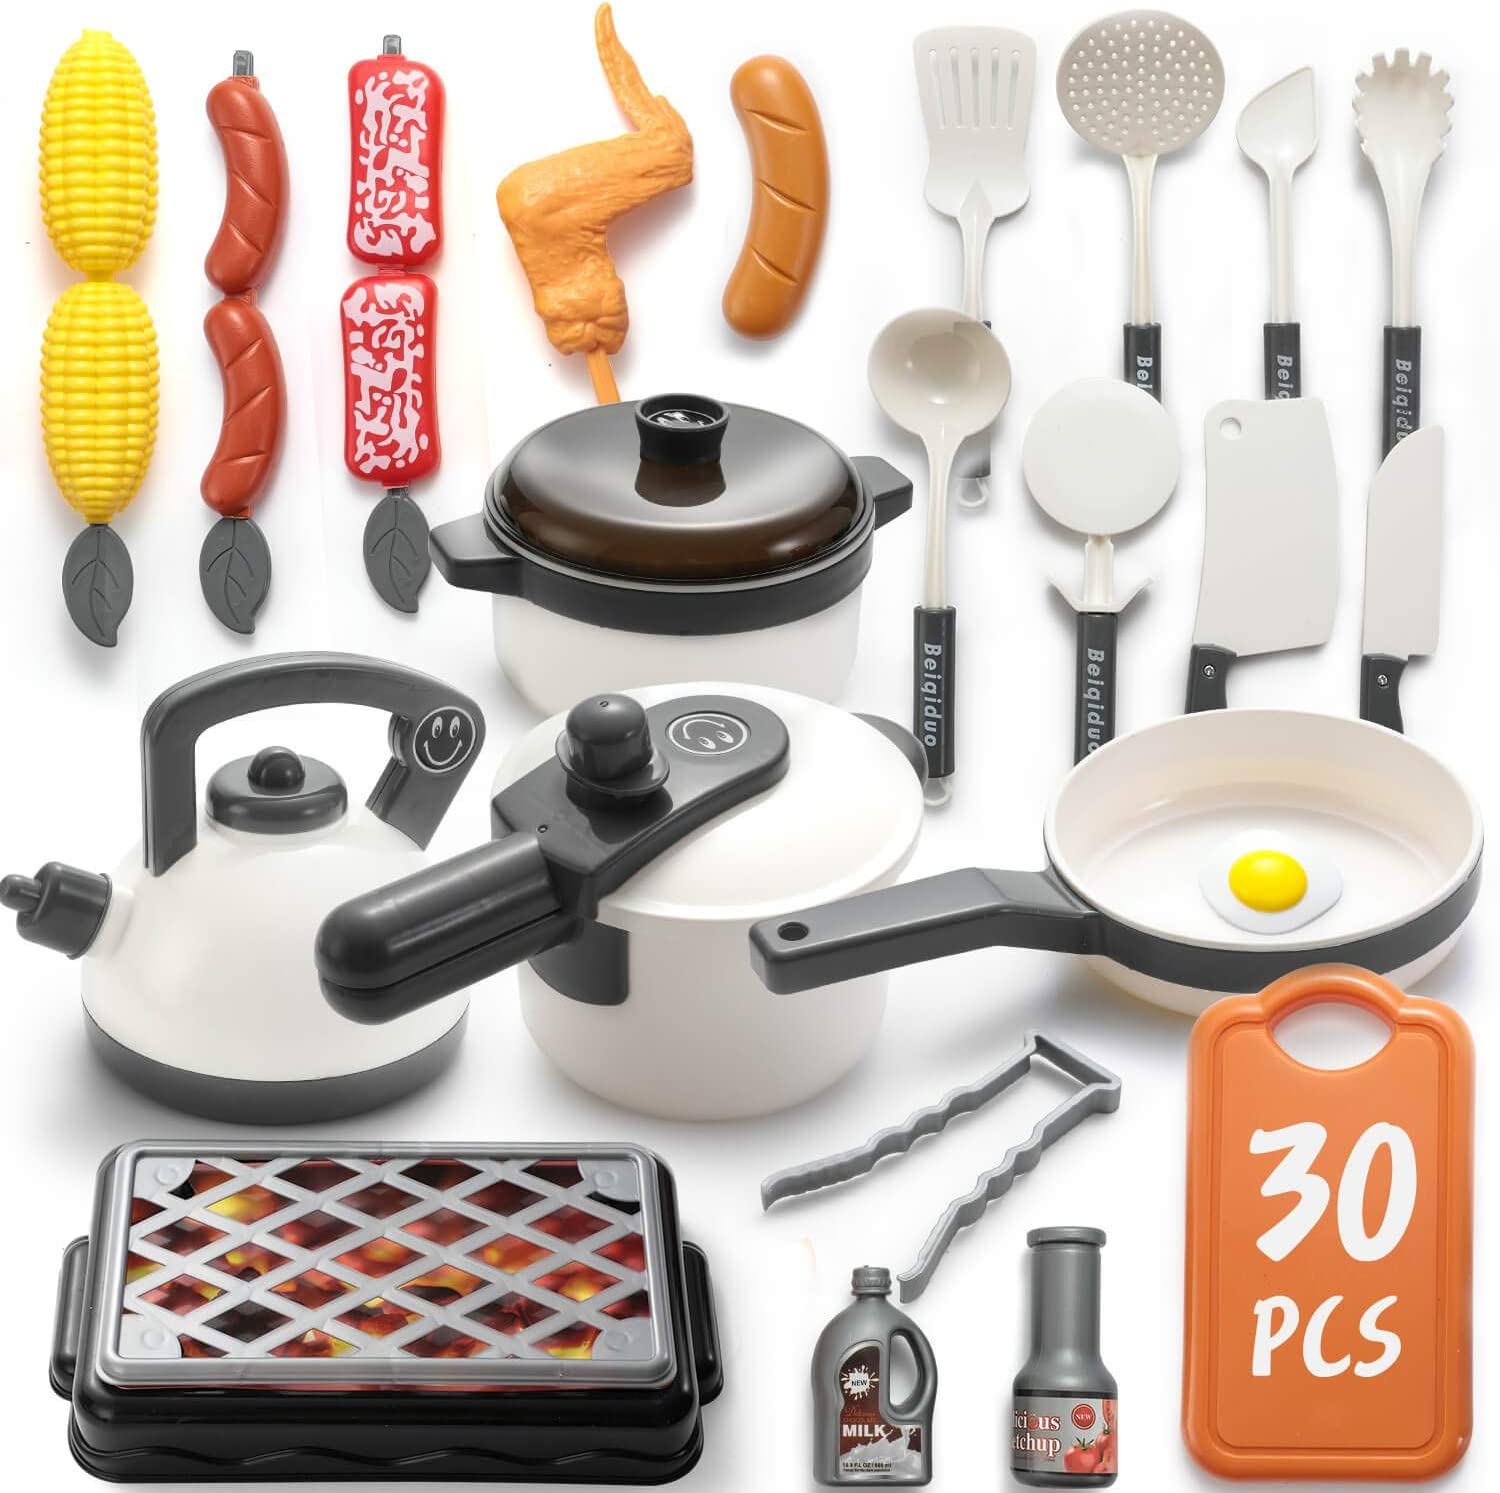 WADILE 30PCS Kitchen Play Toy with Barbecue Cookware Toy Set Pressure Cooker and Electronic Induction Stovetop, Barbecue Cookware, Toy Tableware, Gifts for Girls and Boys